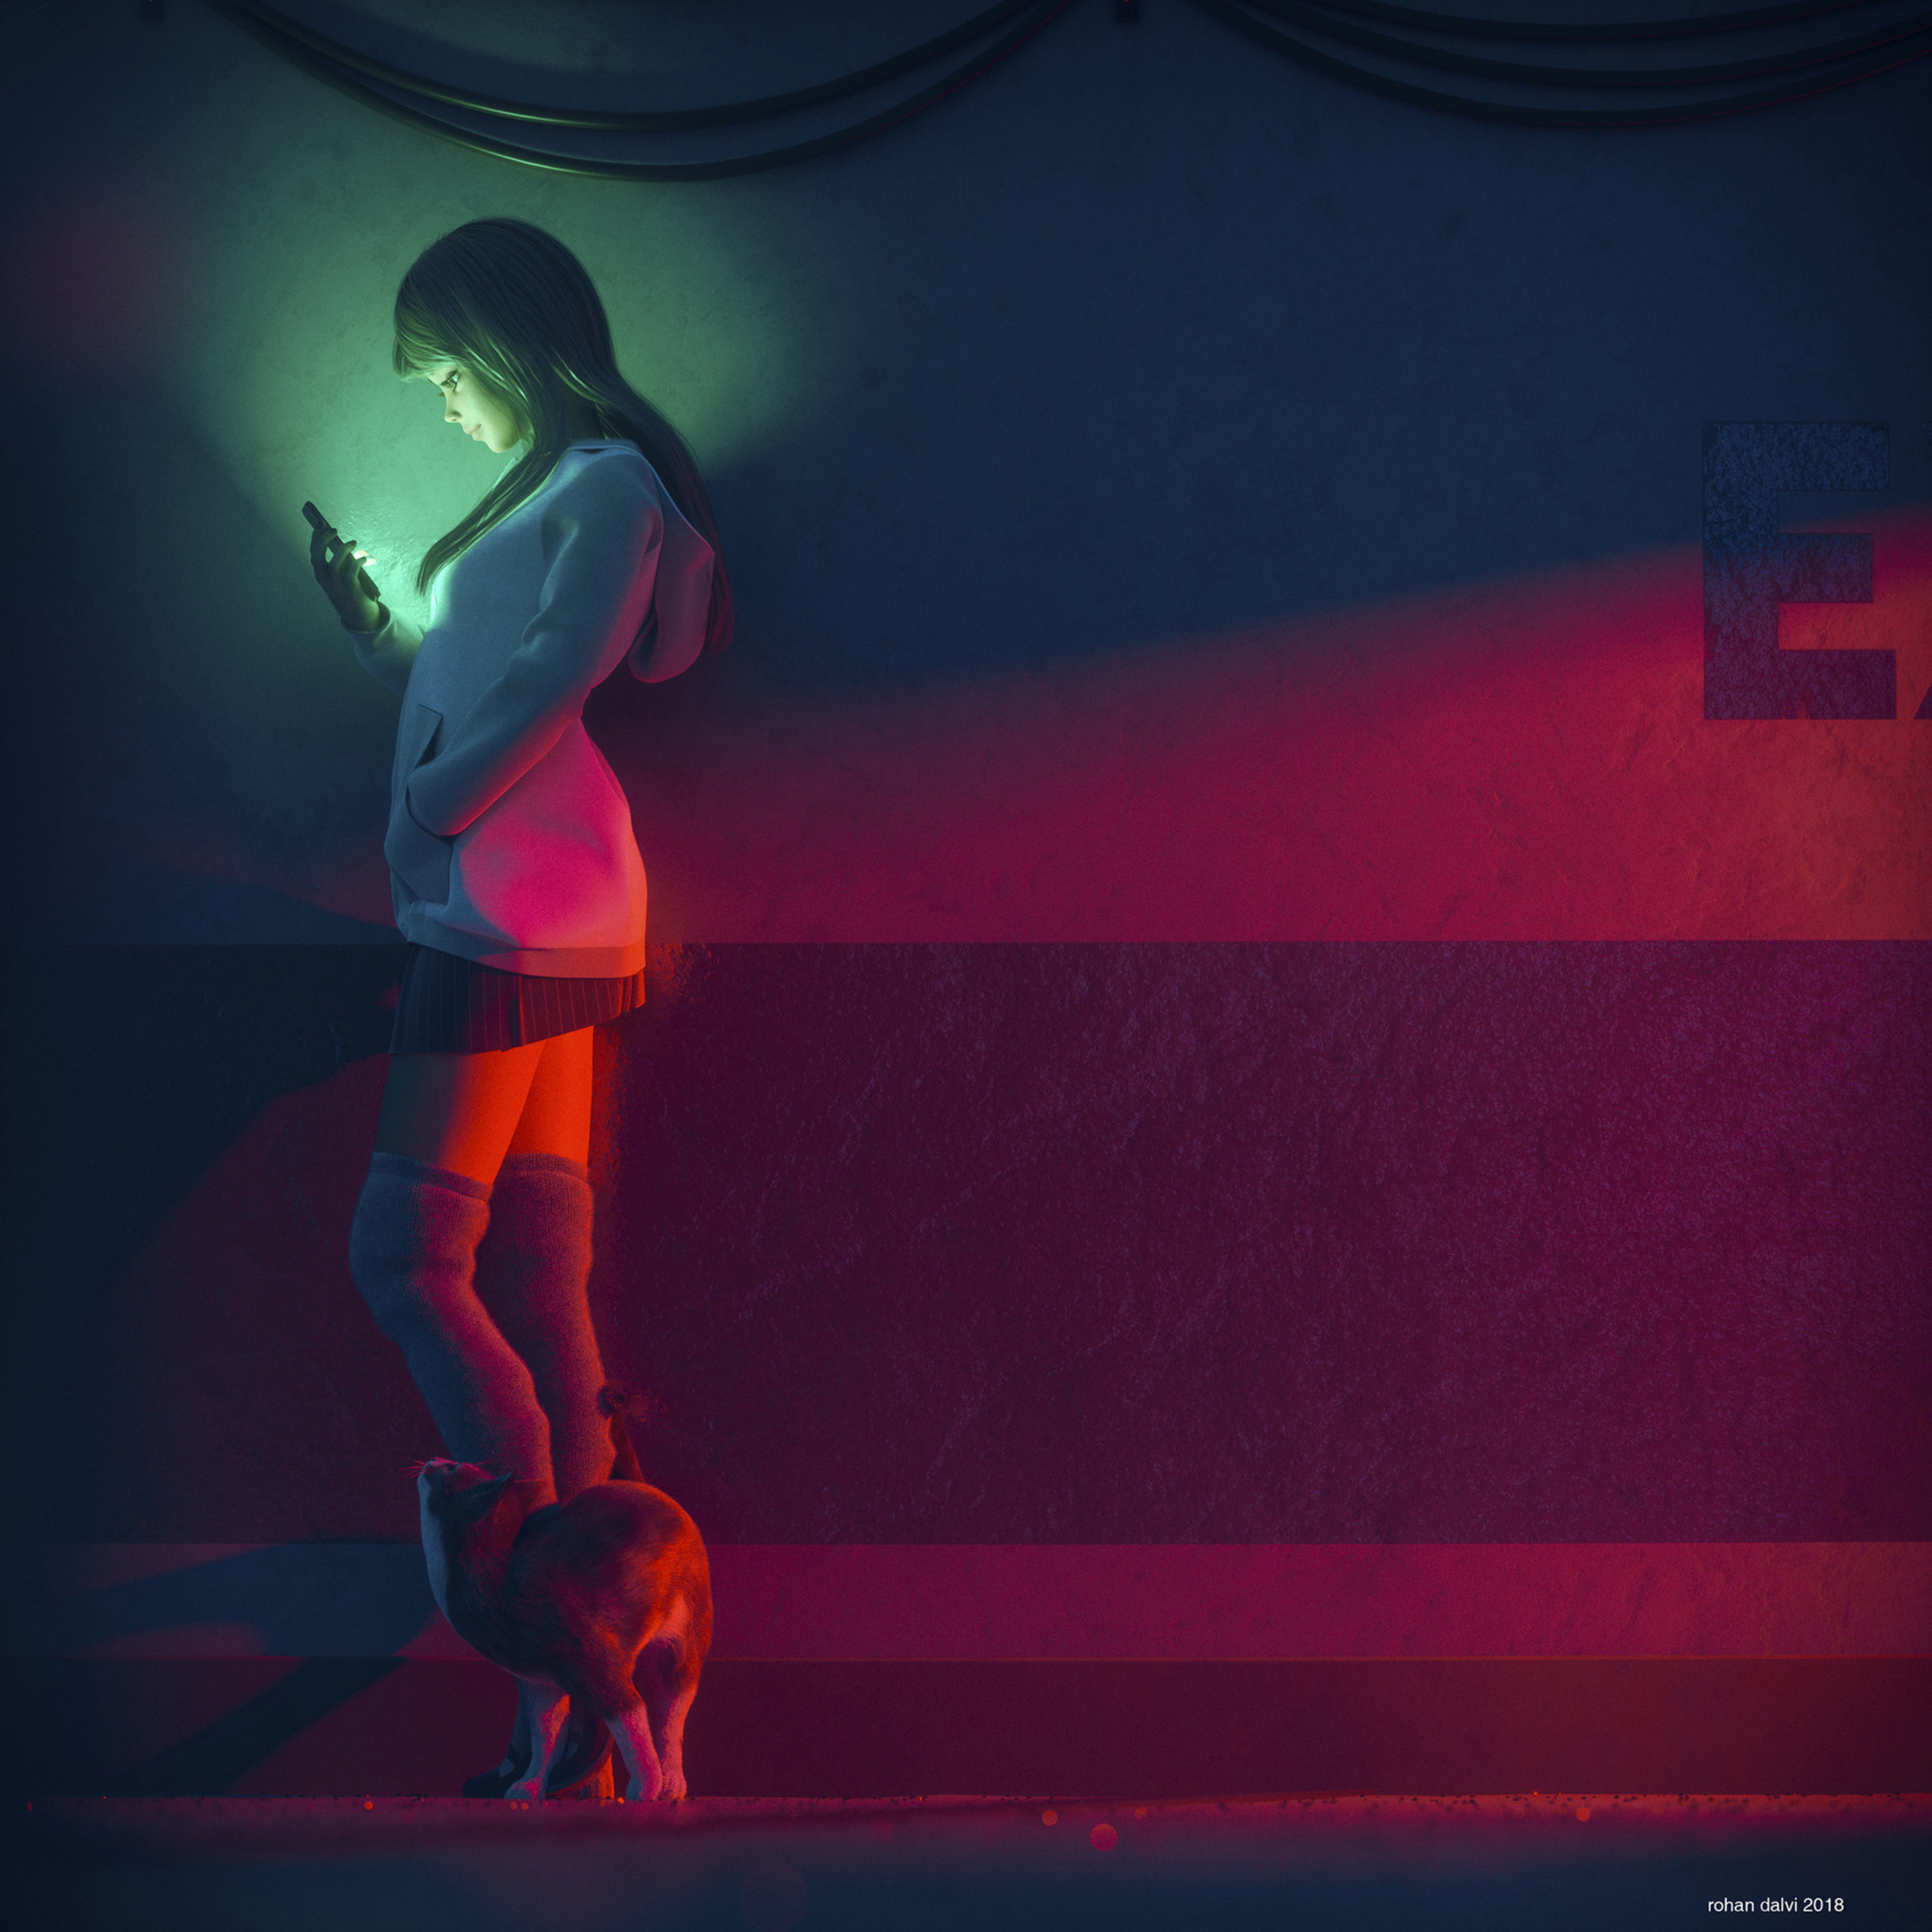 113073 download wallpaper Girl, Art, Cat, Illumination, Lighting, Telephone screensavers and pictures for free